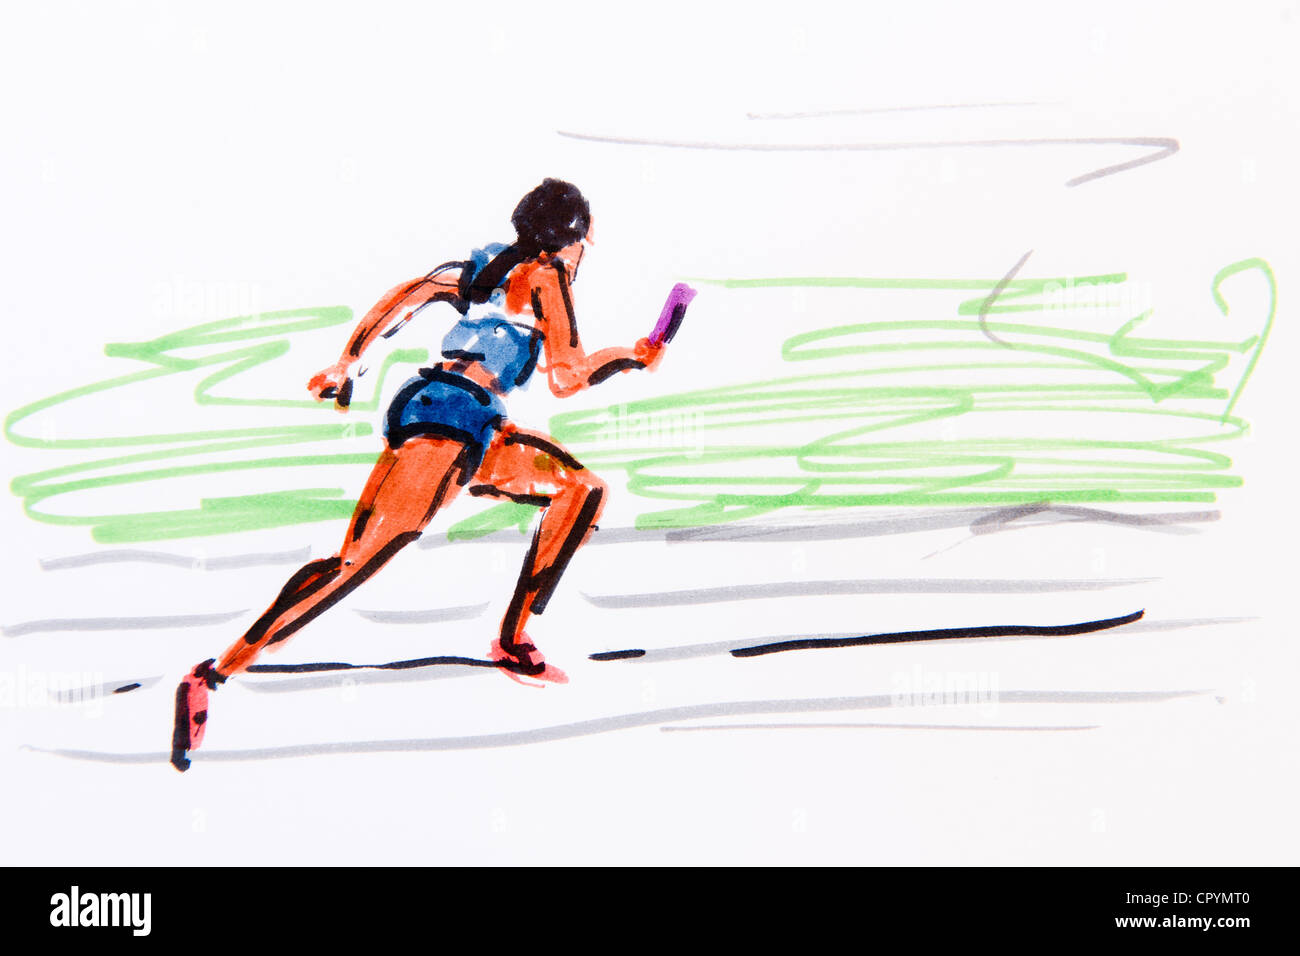 Relay race, track and field athletics, drawing by the artist Gerhard Kraus, Kriftel, illustration - Stock Image